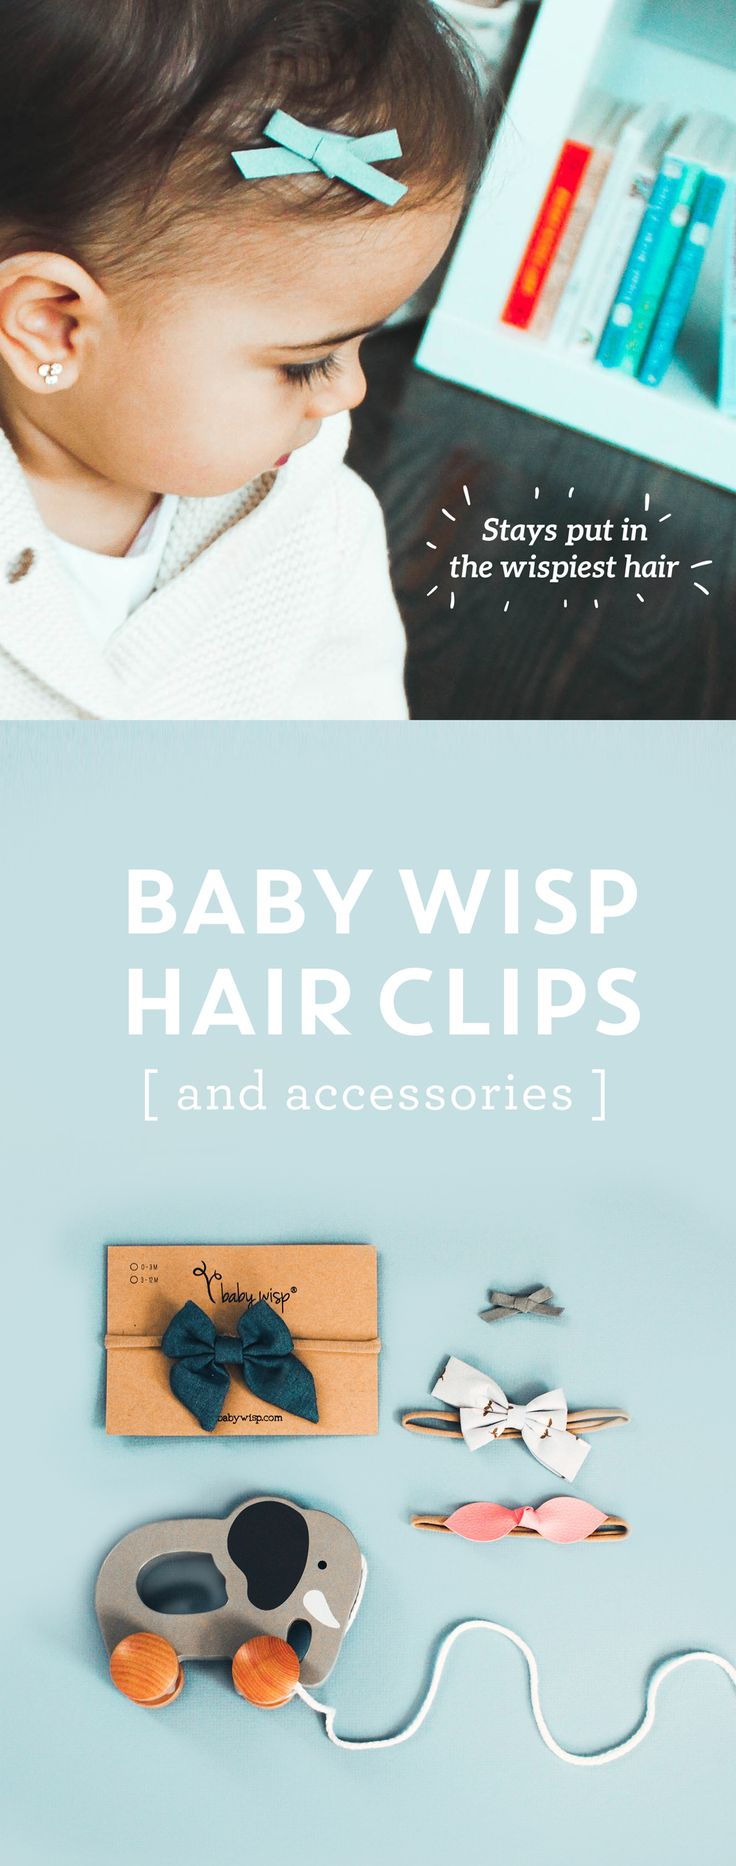 Cute baby hair accessories including clips, headbands, and bows that tame even the wispiest growth. Great ideas and styles for a newborn girl, even if she has just a little bit of hair!